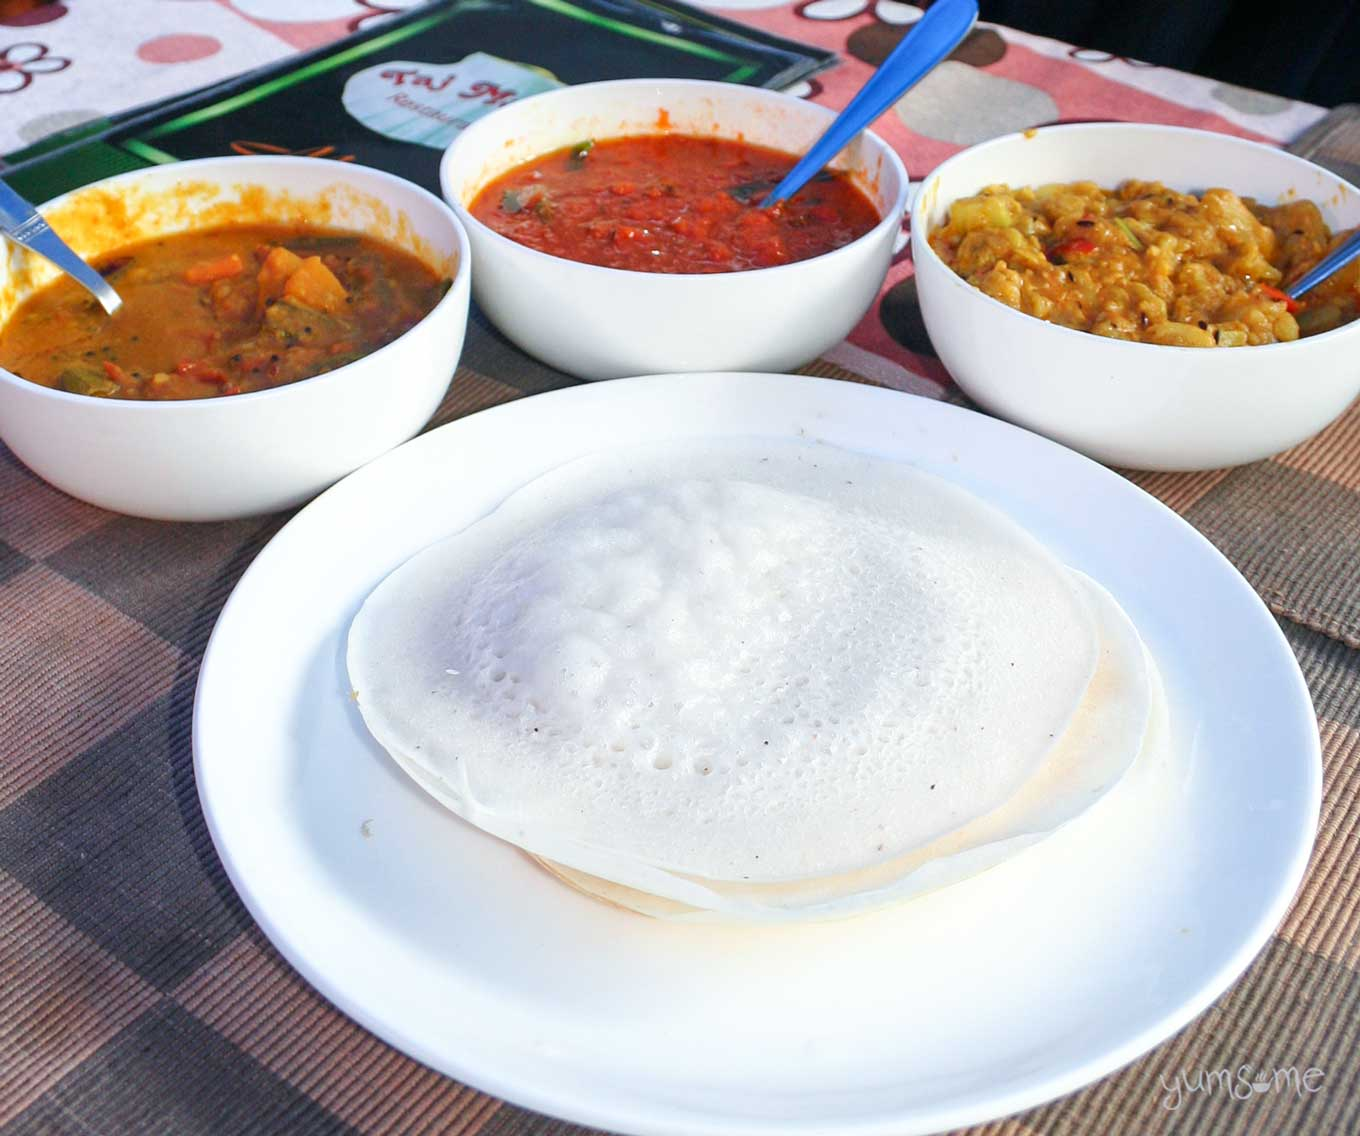 A white plate containing two appams, with three bowls of vegetarian curries behind it.